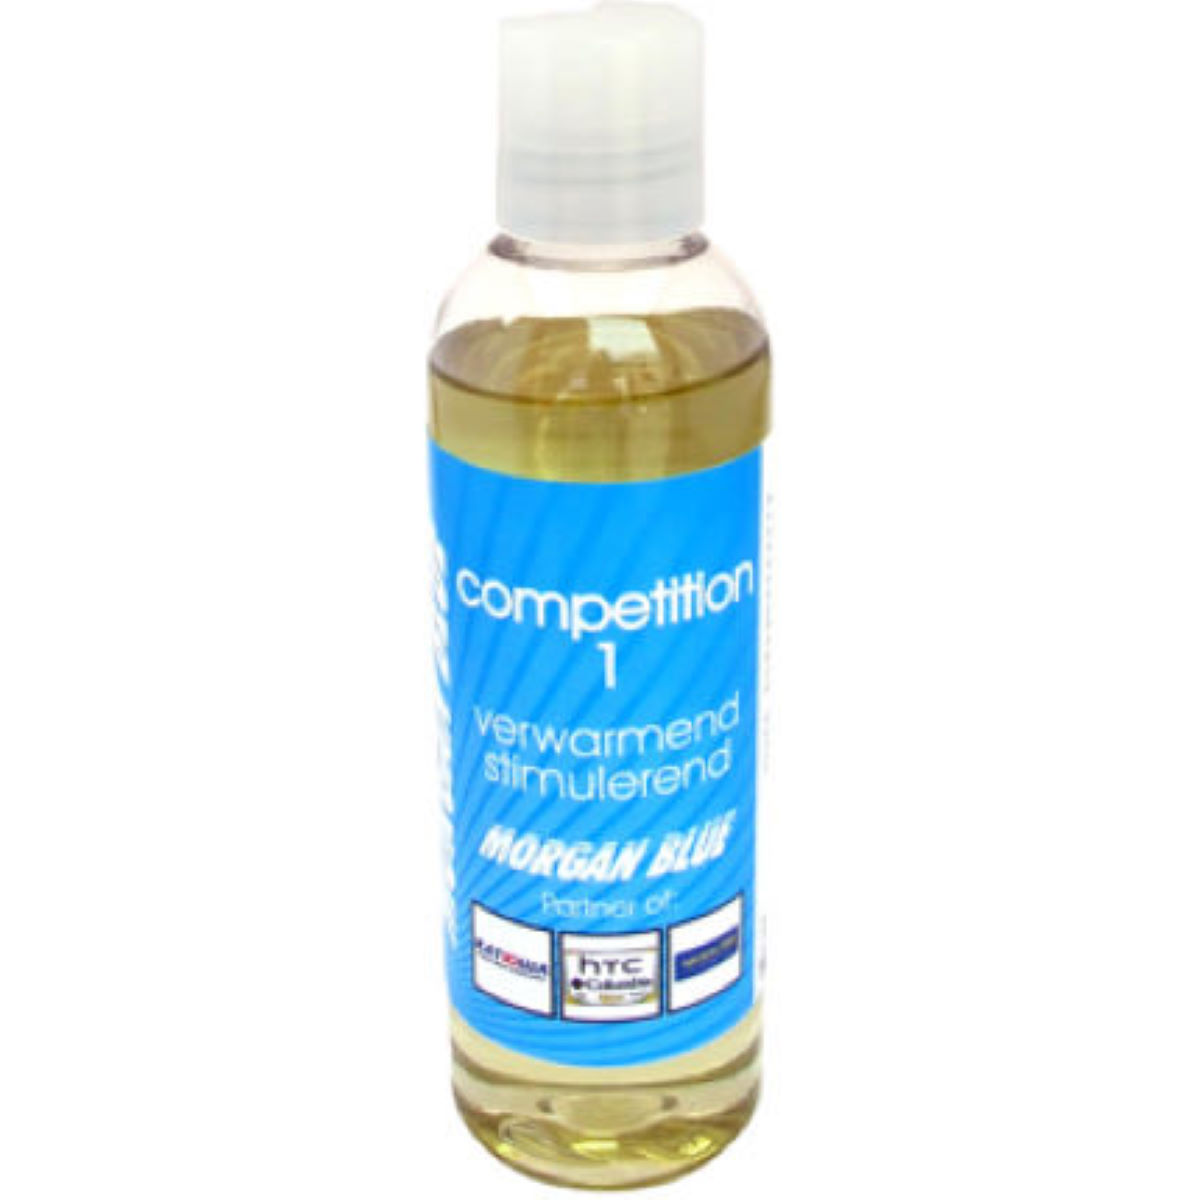 Morgan Blue Morgan Blue Competition 1 Pre-Race Oil - 200ml Bottle   Moisturisers and Skin Care